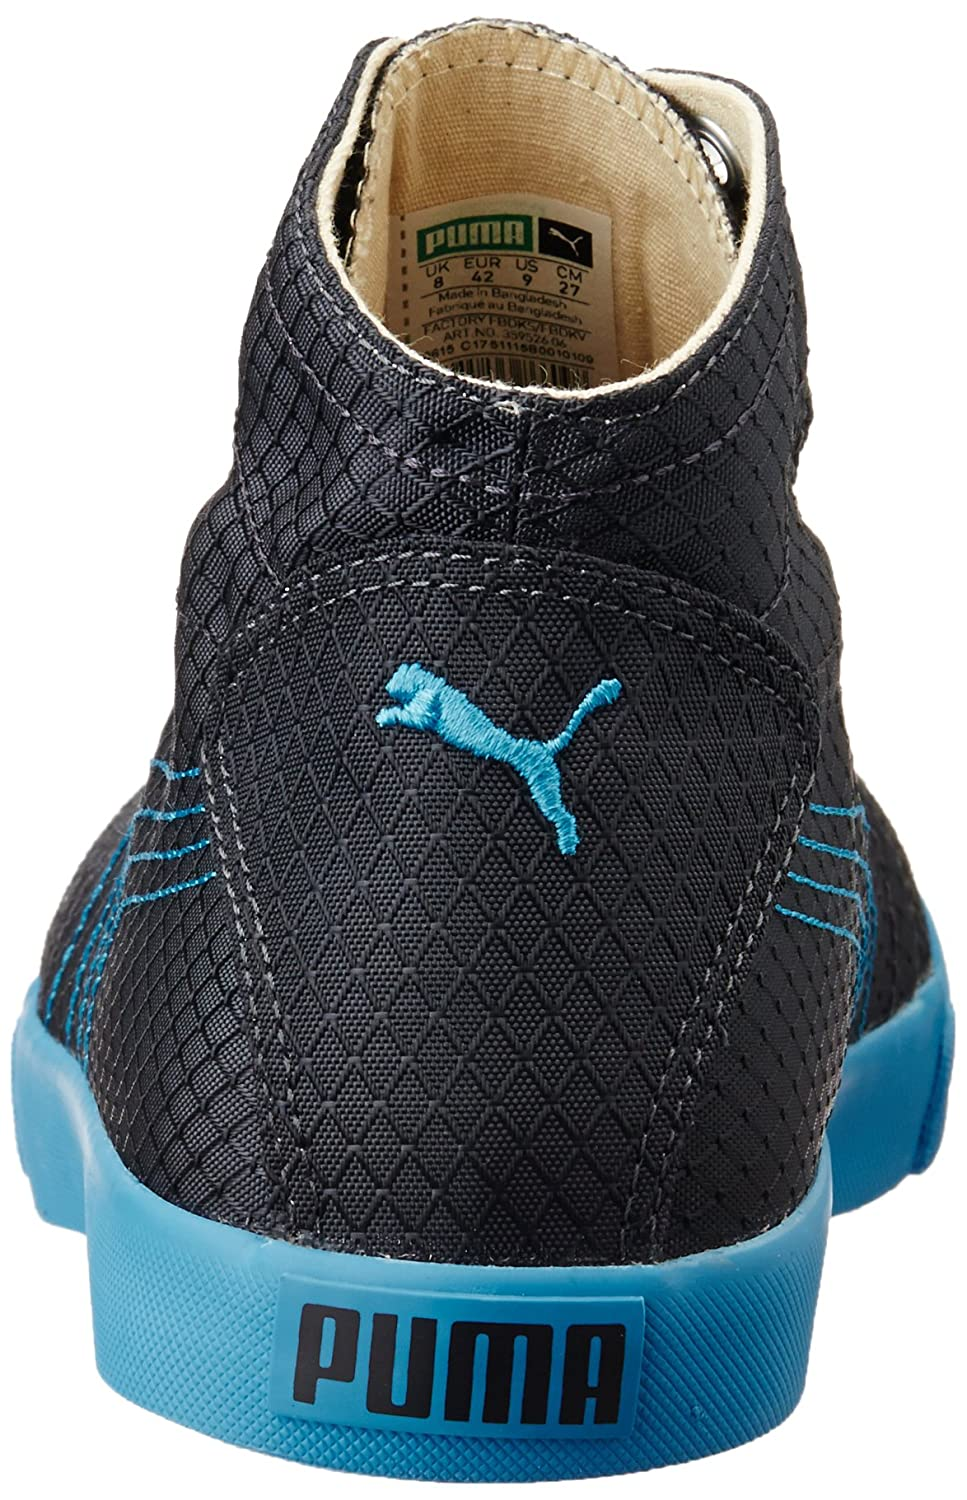 c06be07a1ac2 Puma Men s Drongos DP Sneakers  Buy Online at Low Prices in India -  Amazon.in